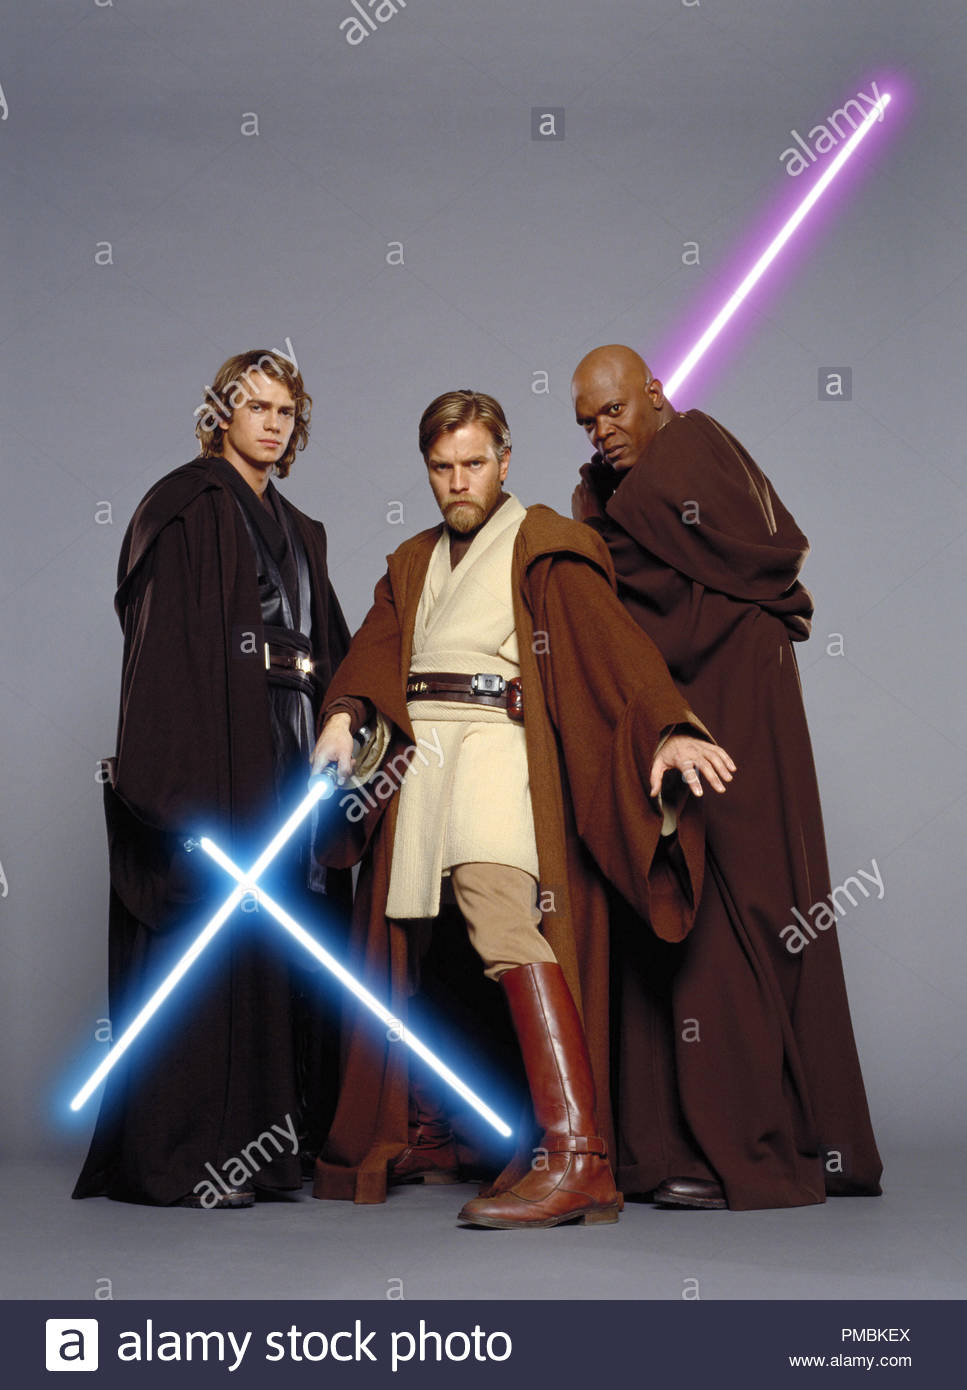 Mace Windu High Resolution Stock Photography and Images   Alamy 967x1390